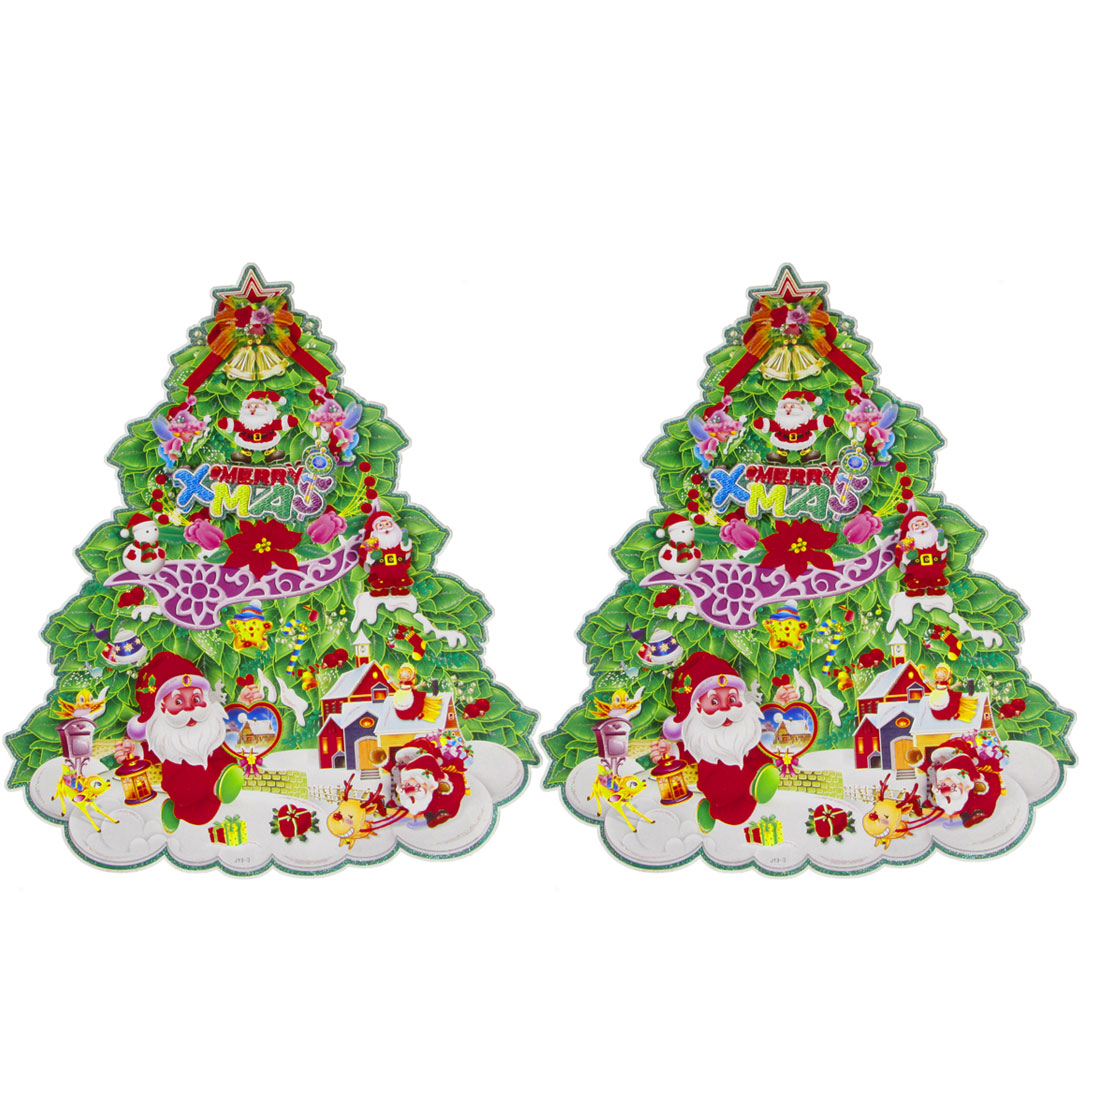 2 Pcs Santa Claus Snowman Decor Christmas Tree Design Wall Decals 295mm x 360mm